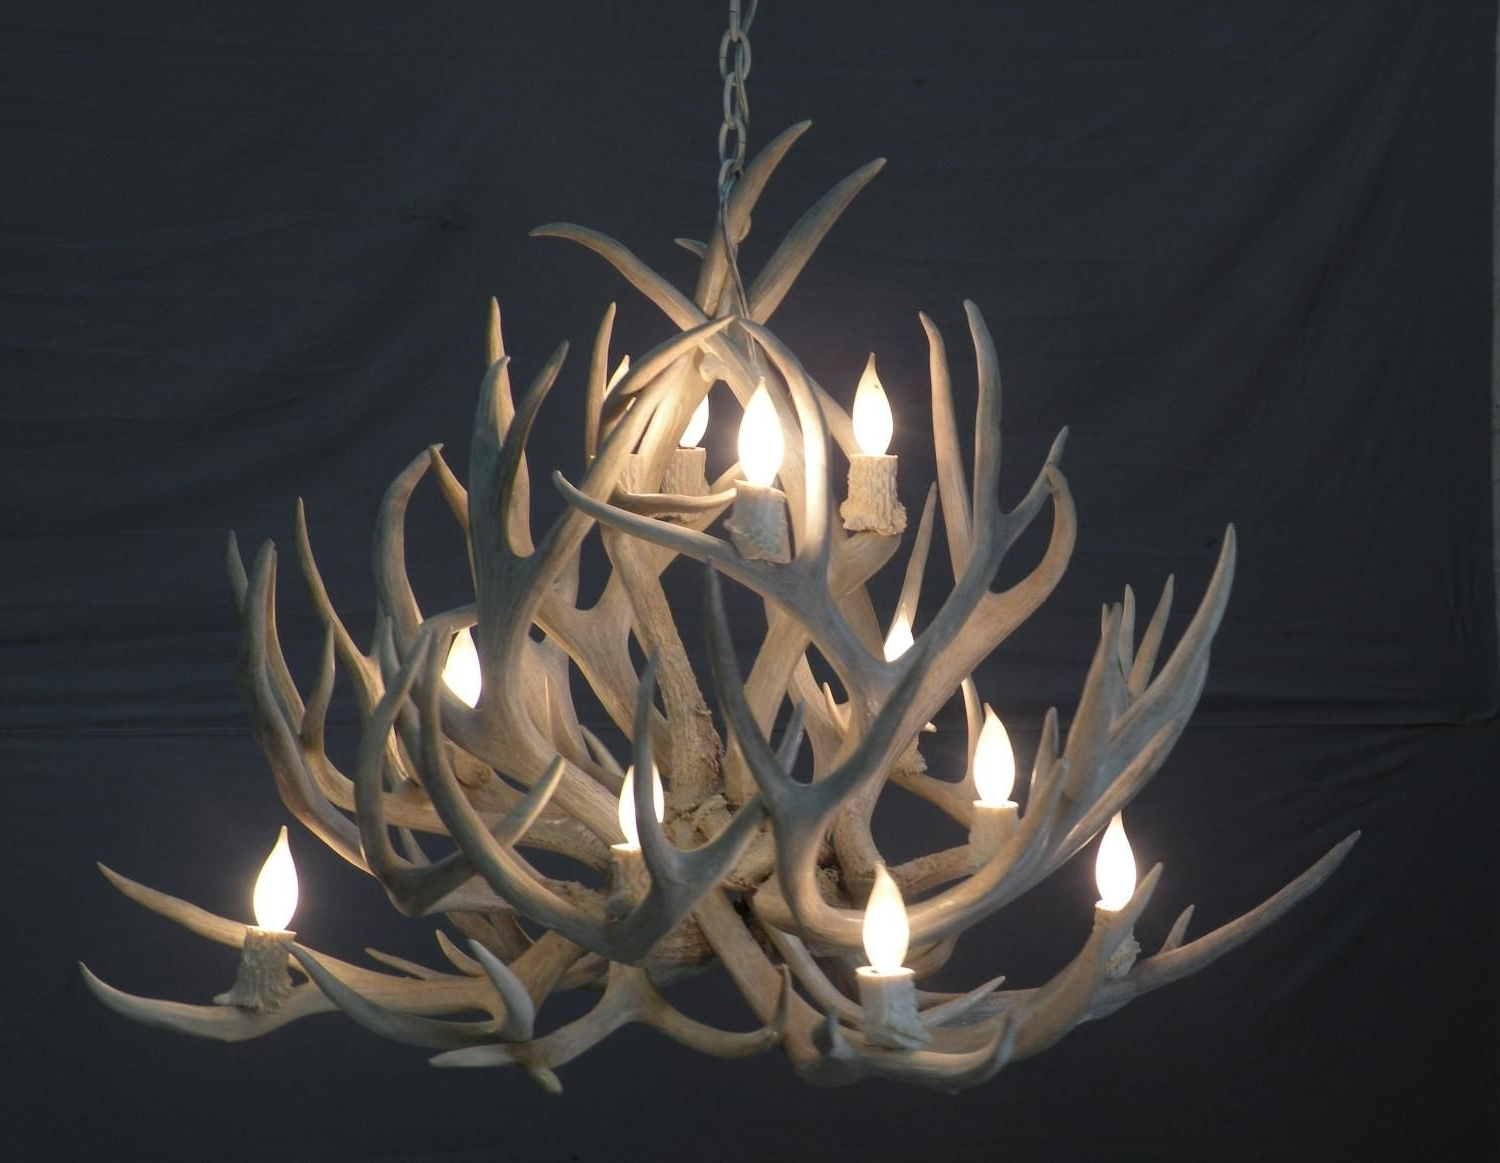 Lamps: Antler Chandelier 6 Light Large Antler Chandelier Uk Lucite Inside Most Popular Turquoise Antler Chandeliers (View 9 of 20)